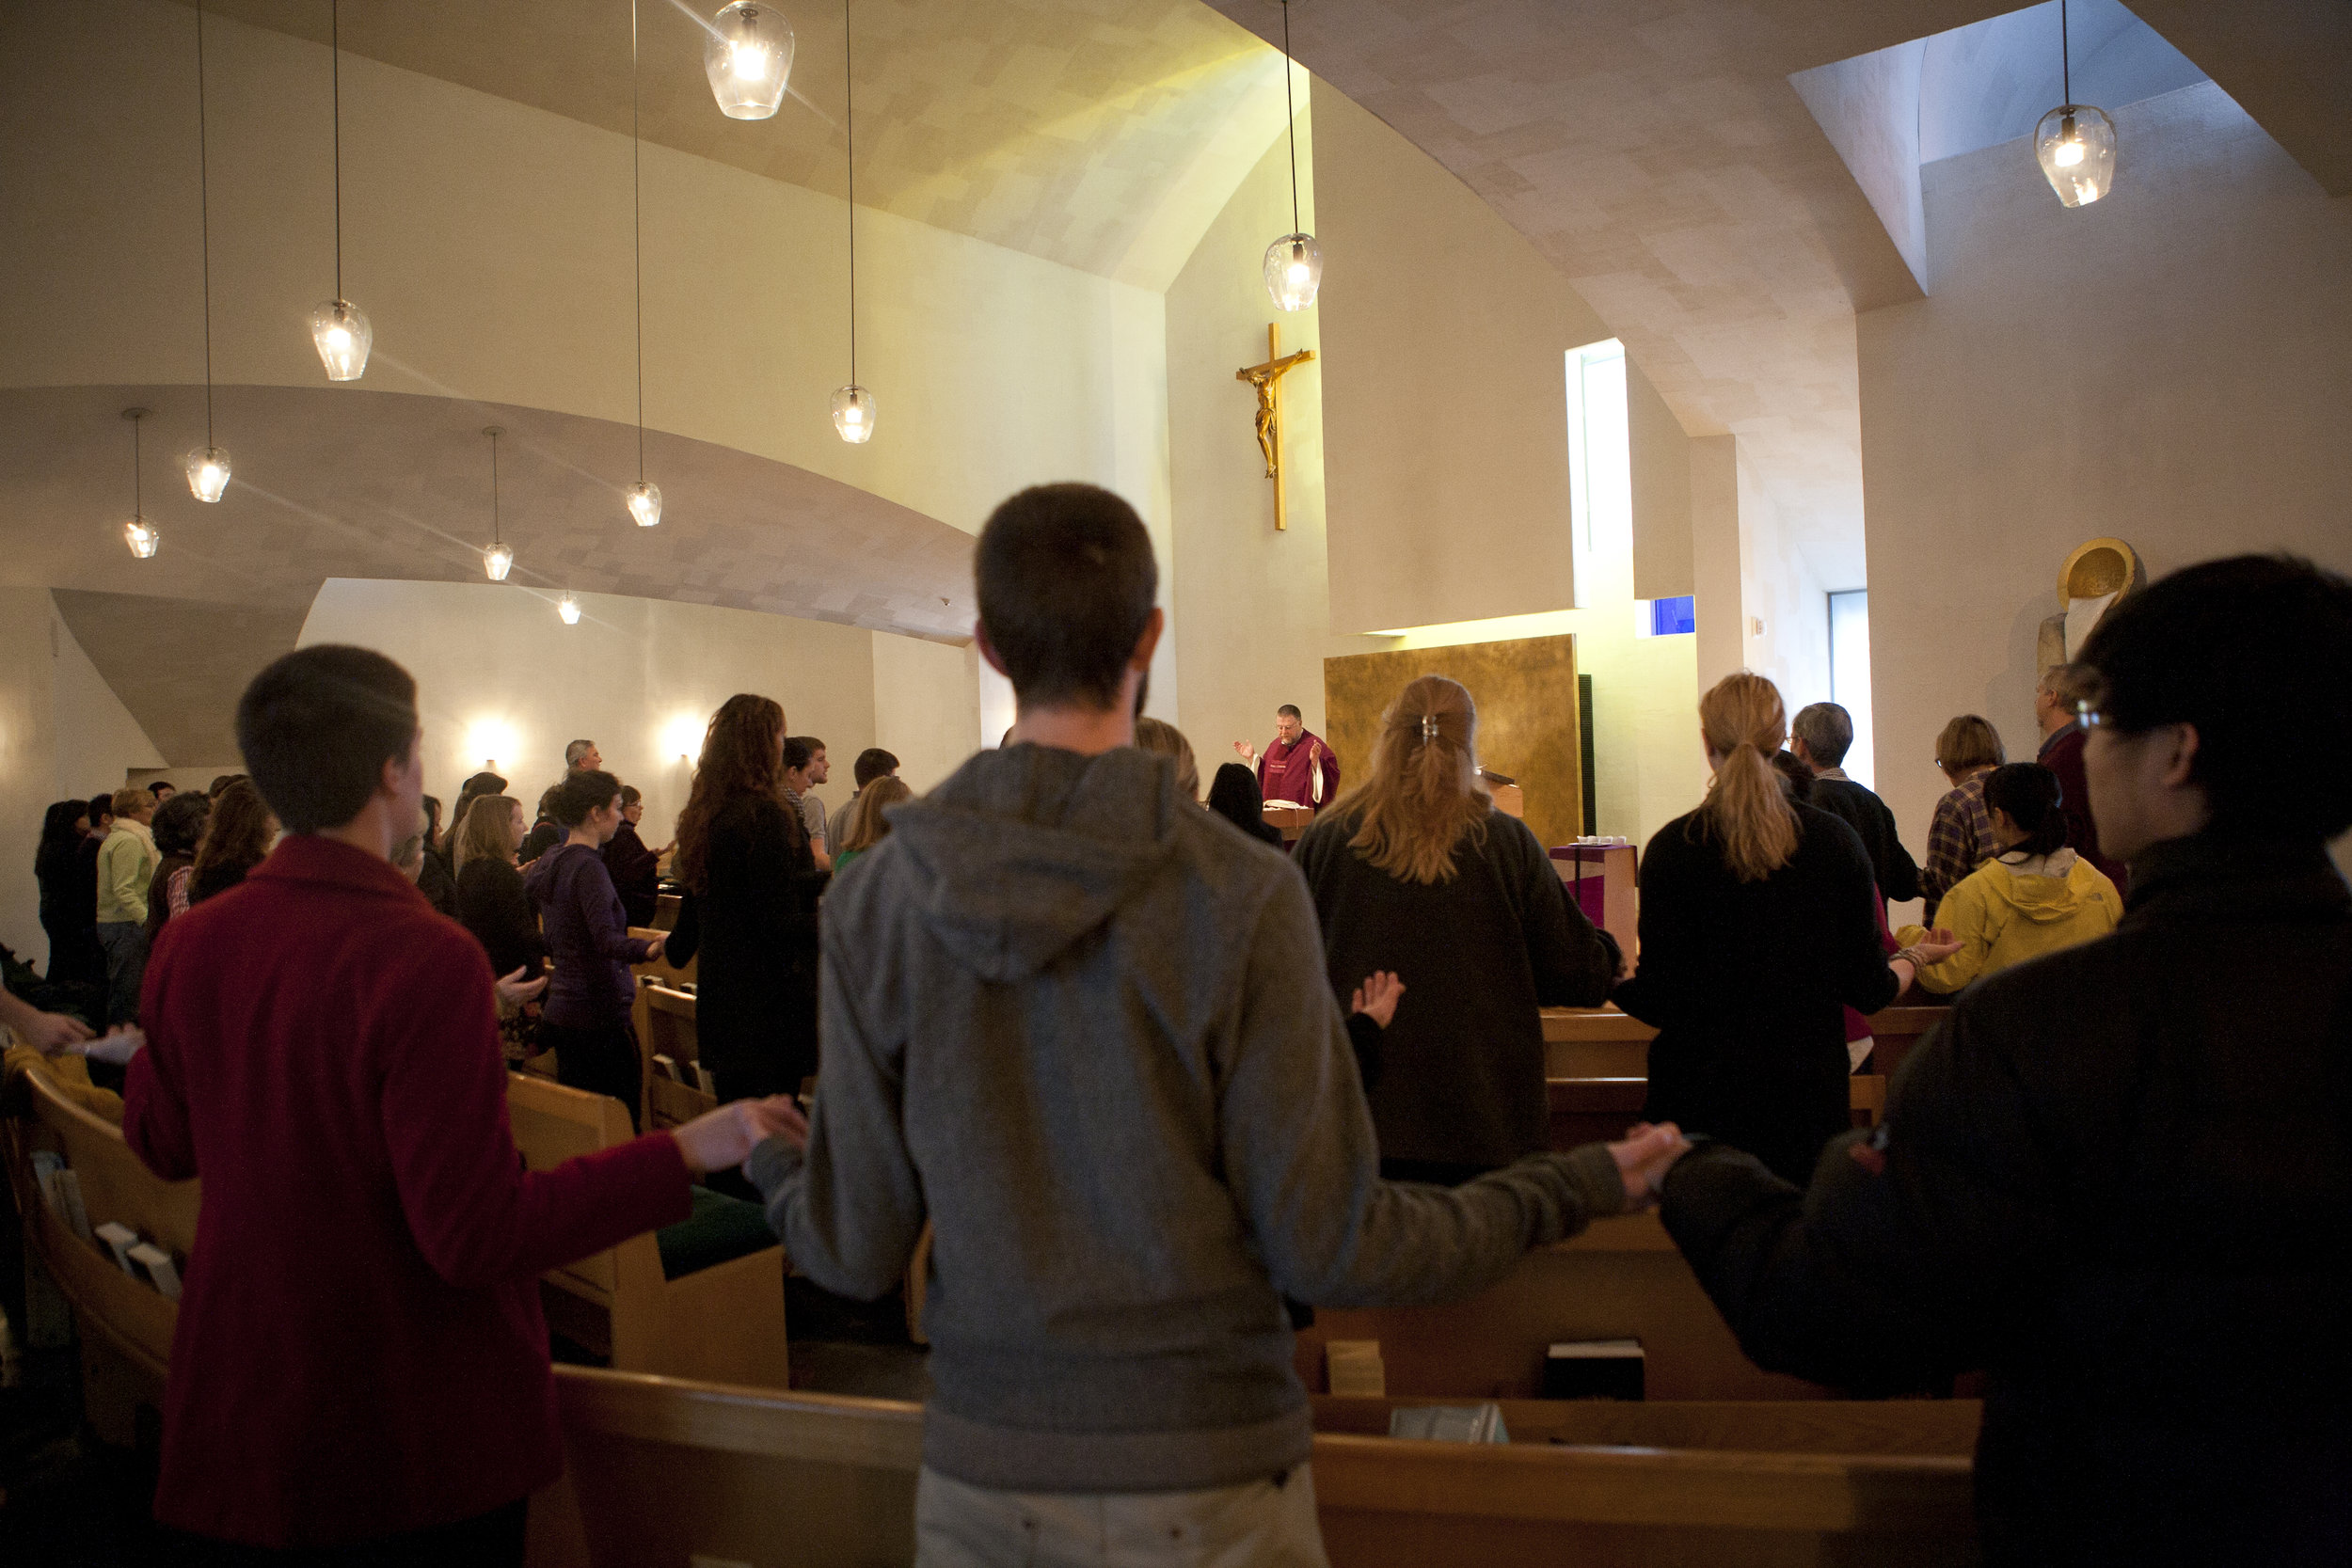 Students gather inside of the Chapel of St. Ignatius for Mass (photo courtesy of Seattle University)